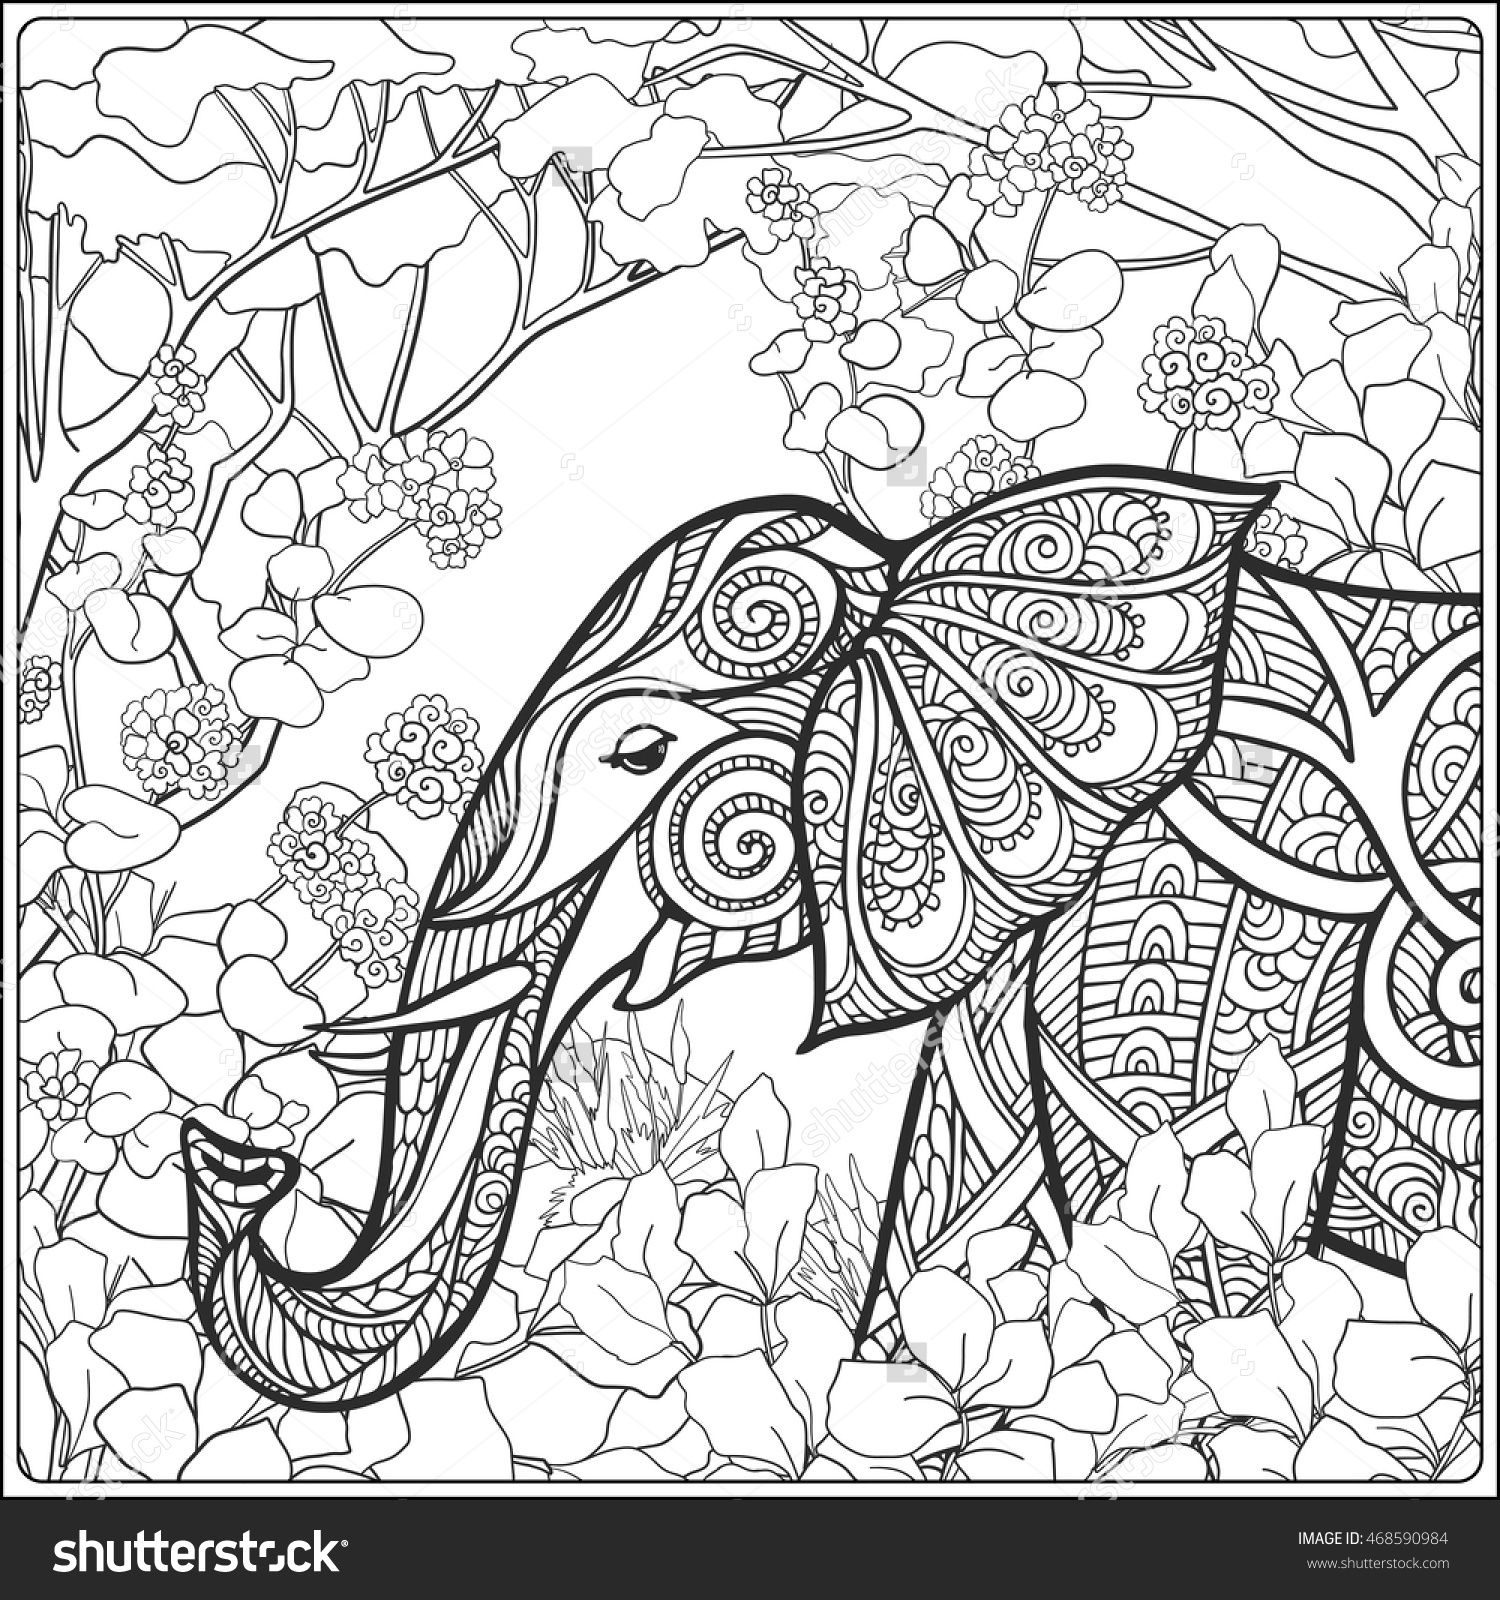 - Coloring Page With Elephant In Forest. Book For Adult And Older